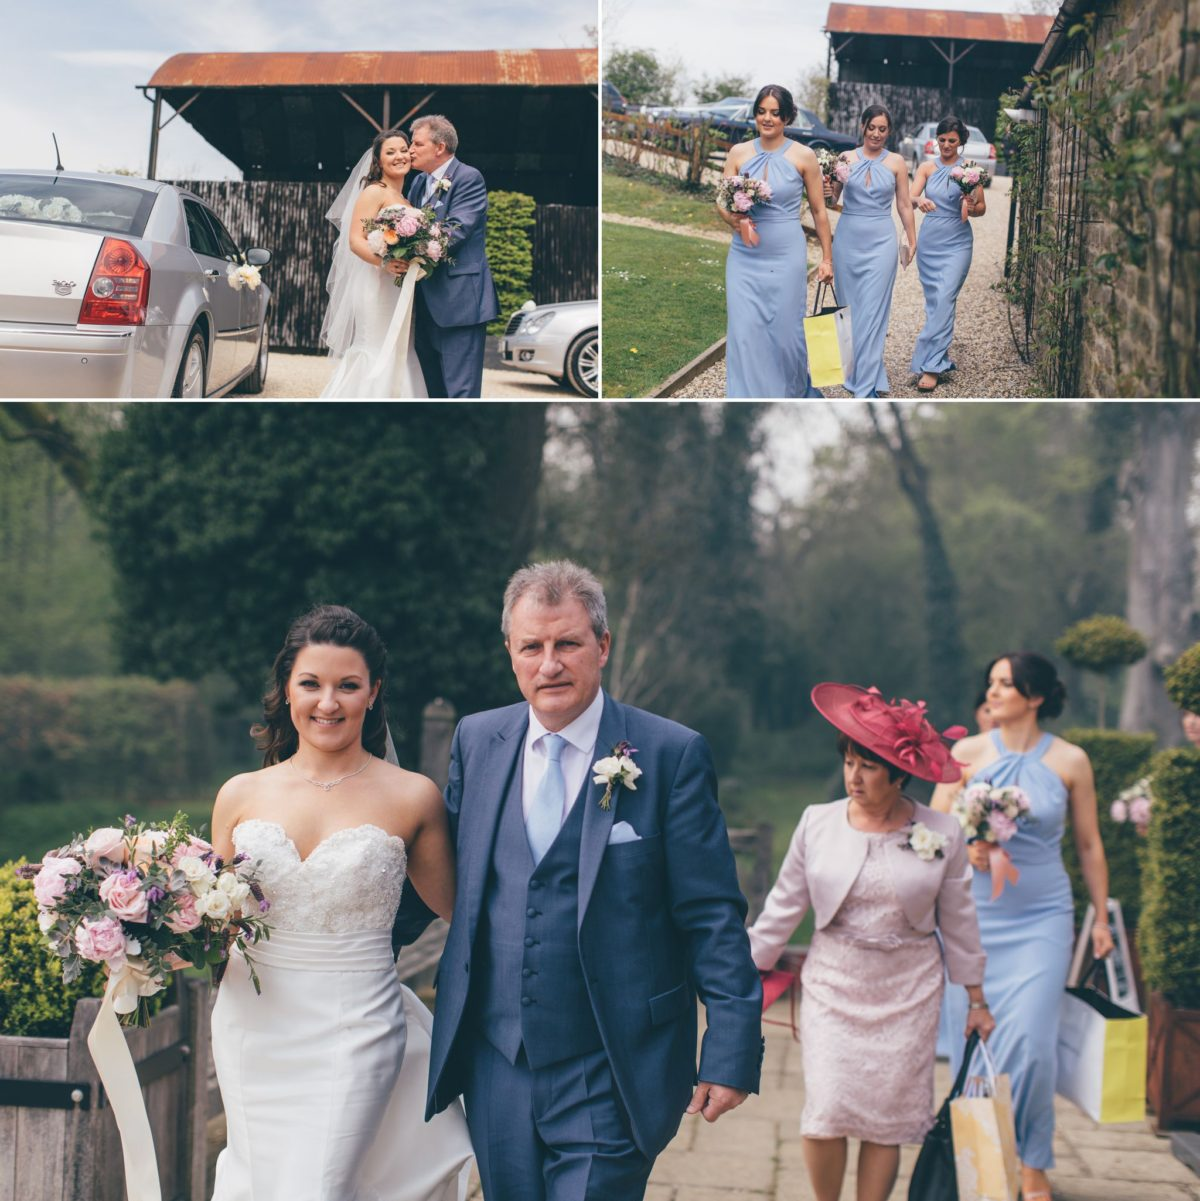 cripps_barn_gloucesterhsire_welsh_wedding_photographer_rachel_lambert_photography_jordan_amy_ 44